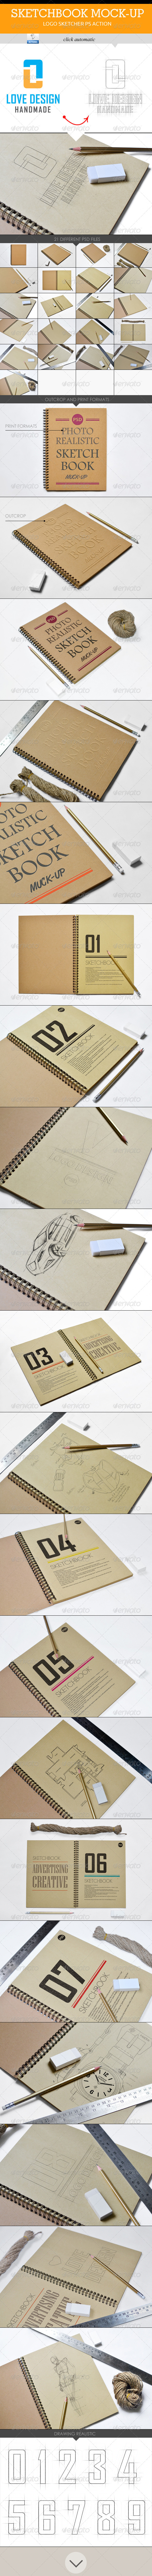 GraphicRiver Sketchbook Mock-Up 8197799